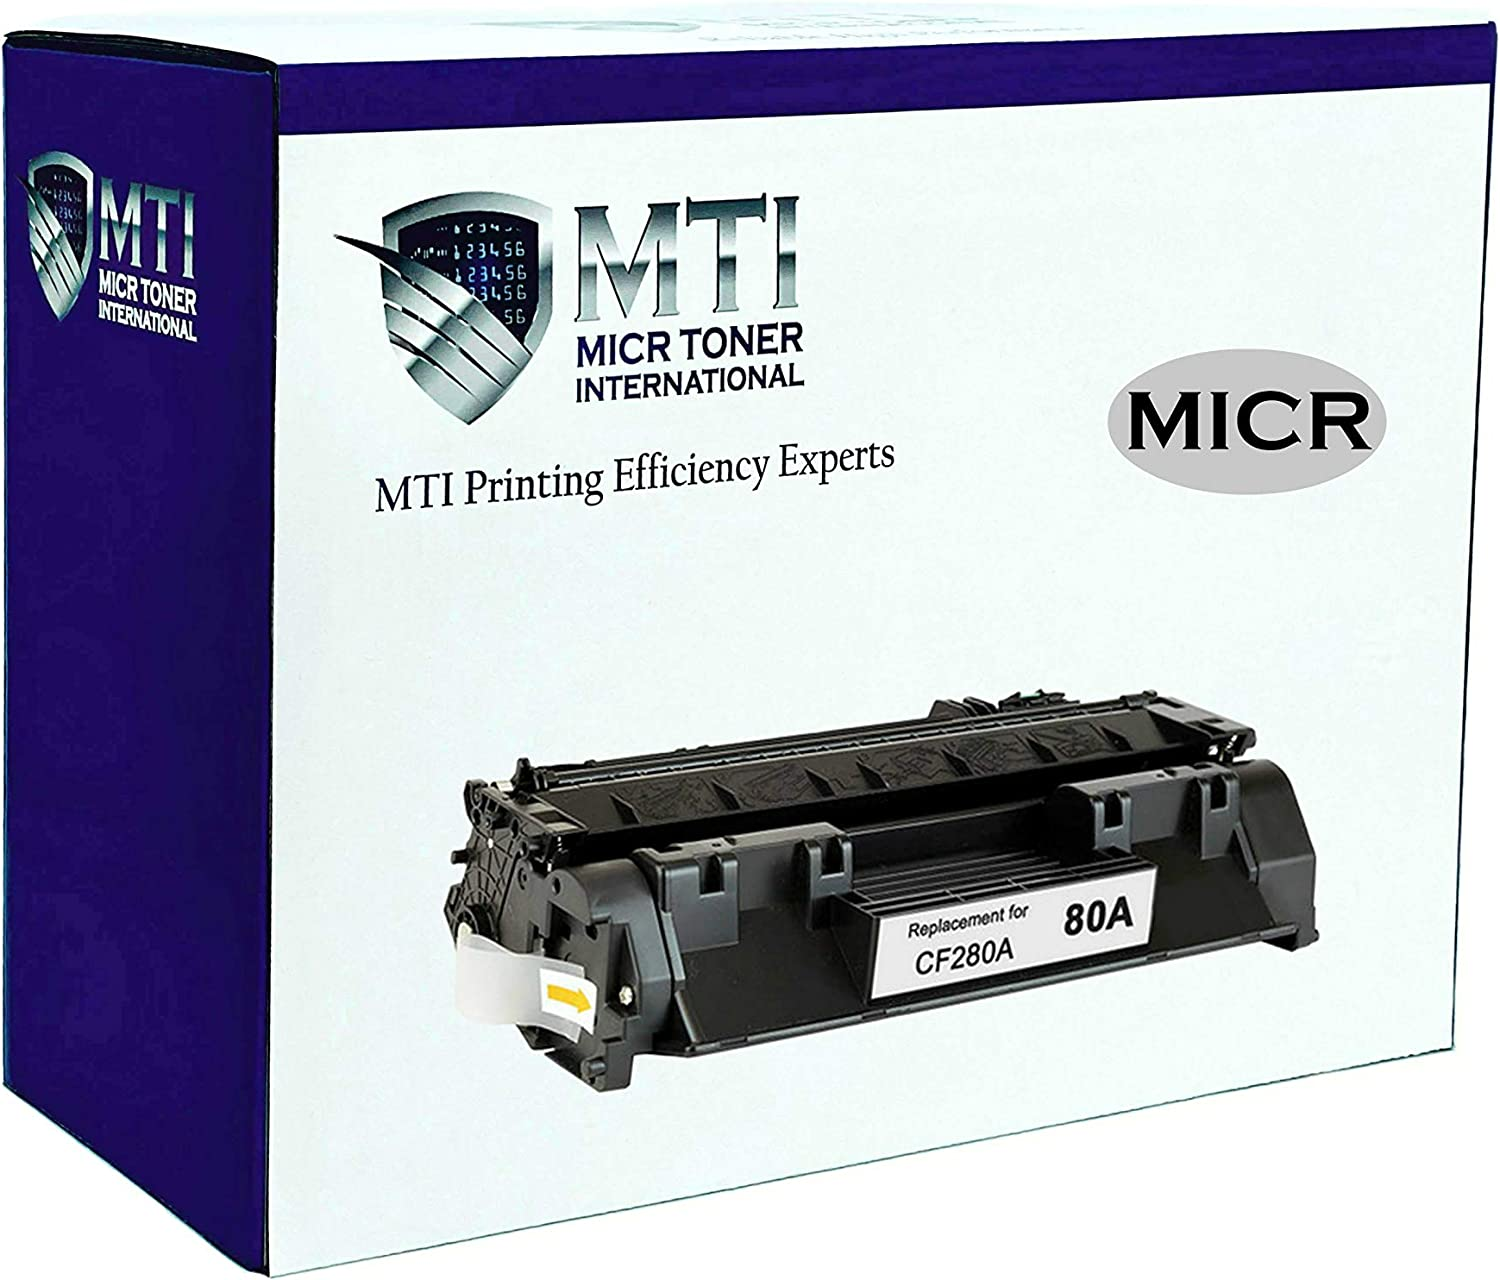 MICR Toner International Magnetic Ink Cartridge Replacement for HP 80A CF280A LaserJet Pro 400 Printers